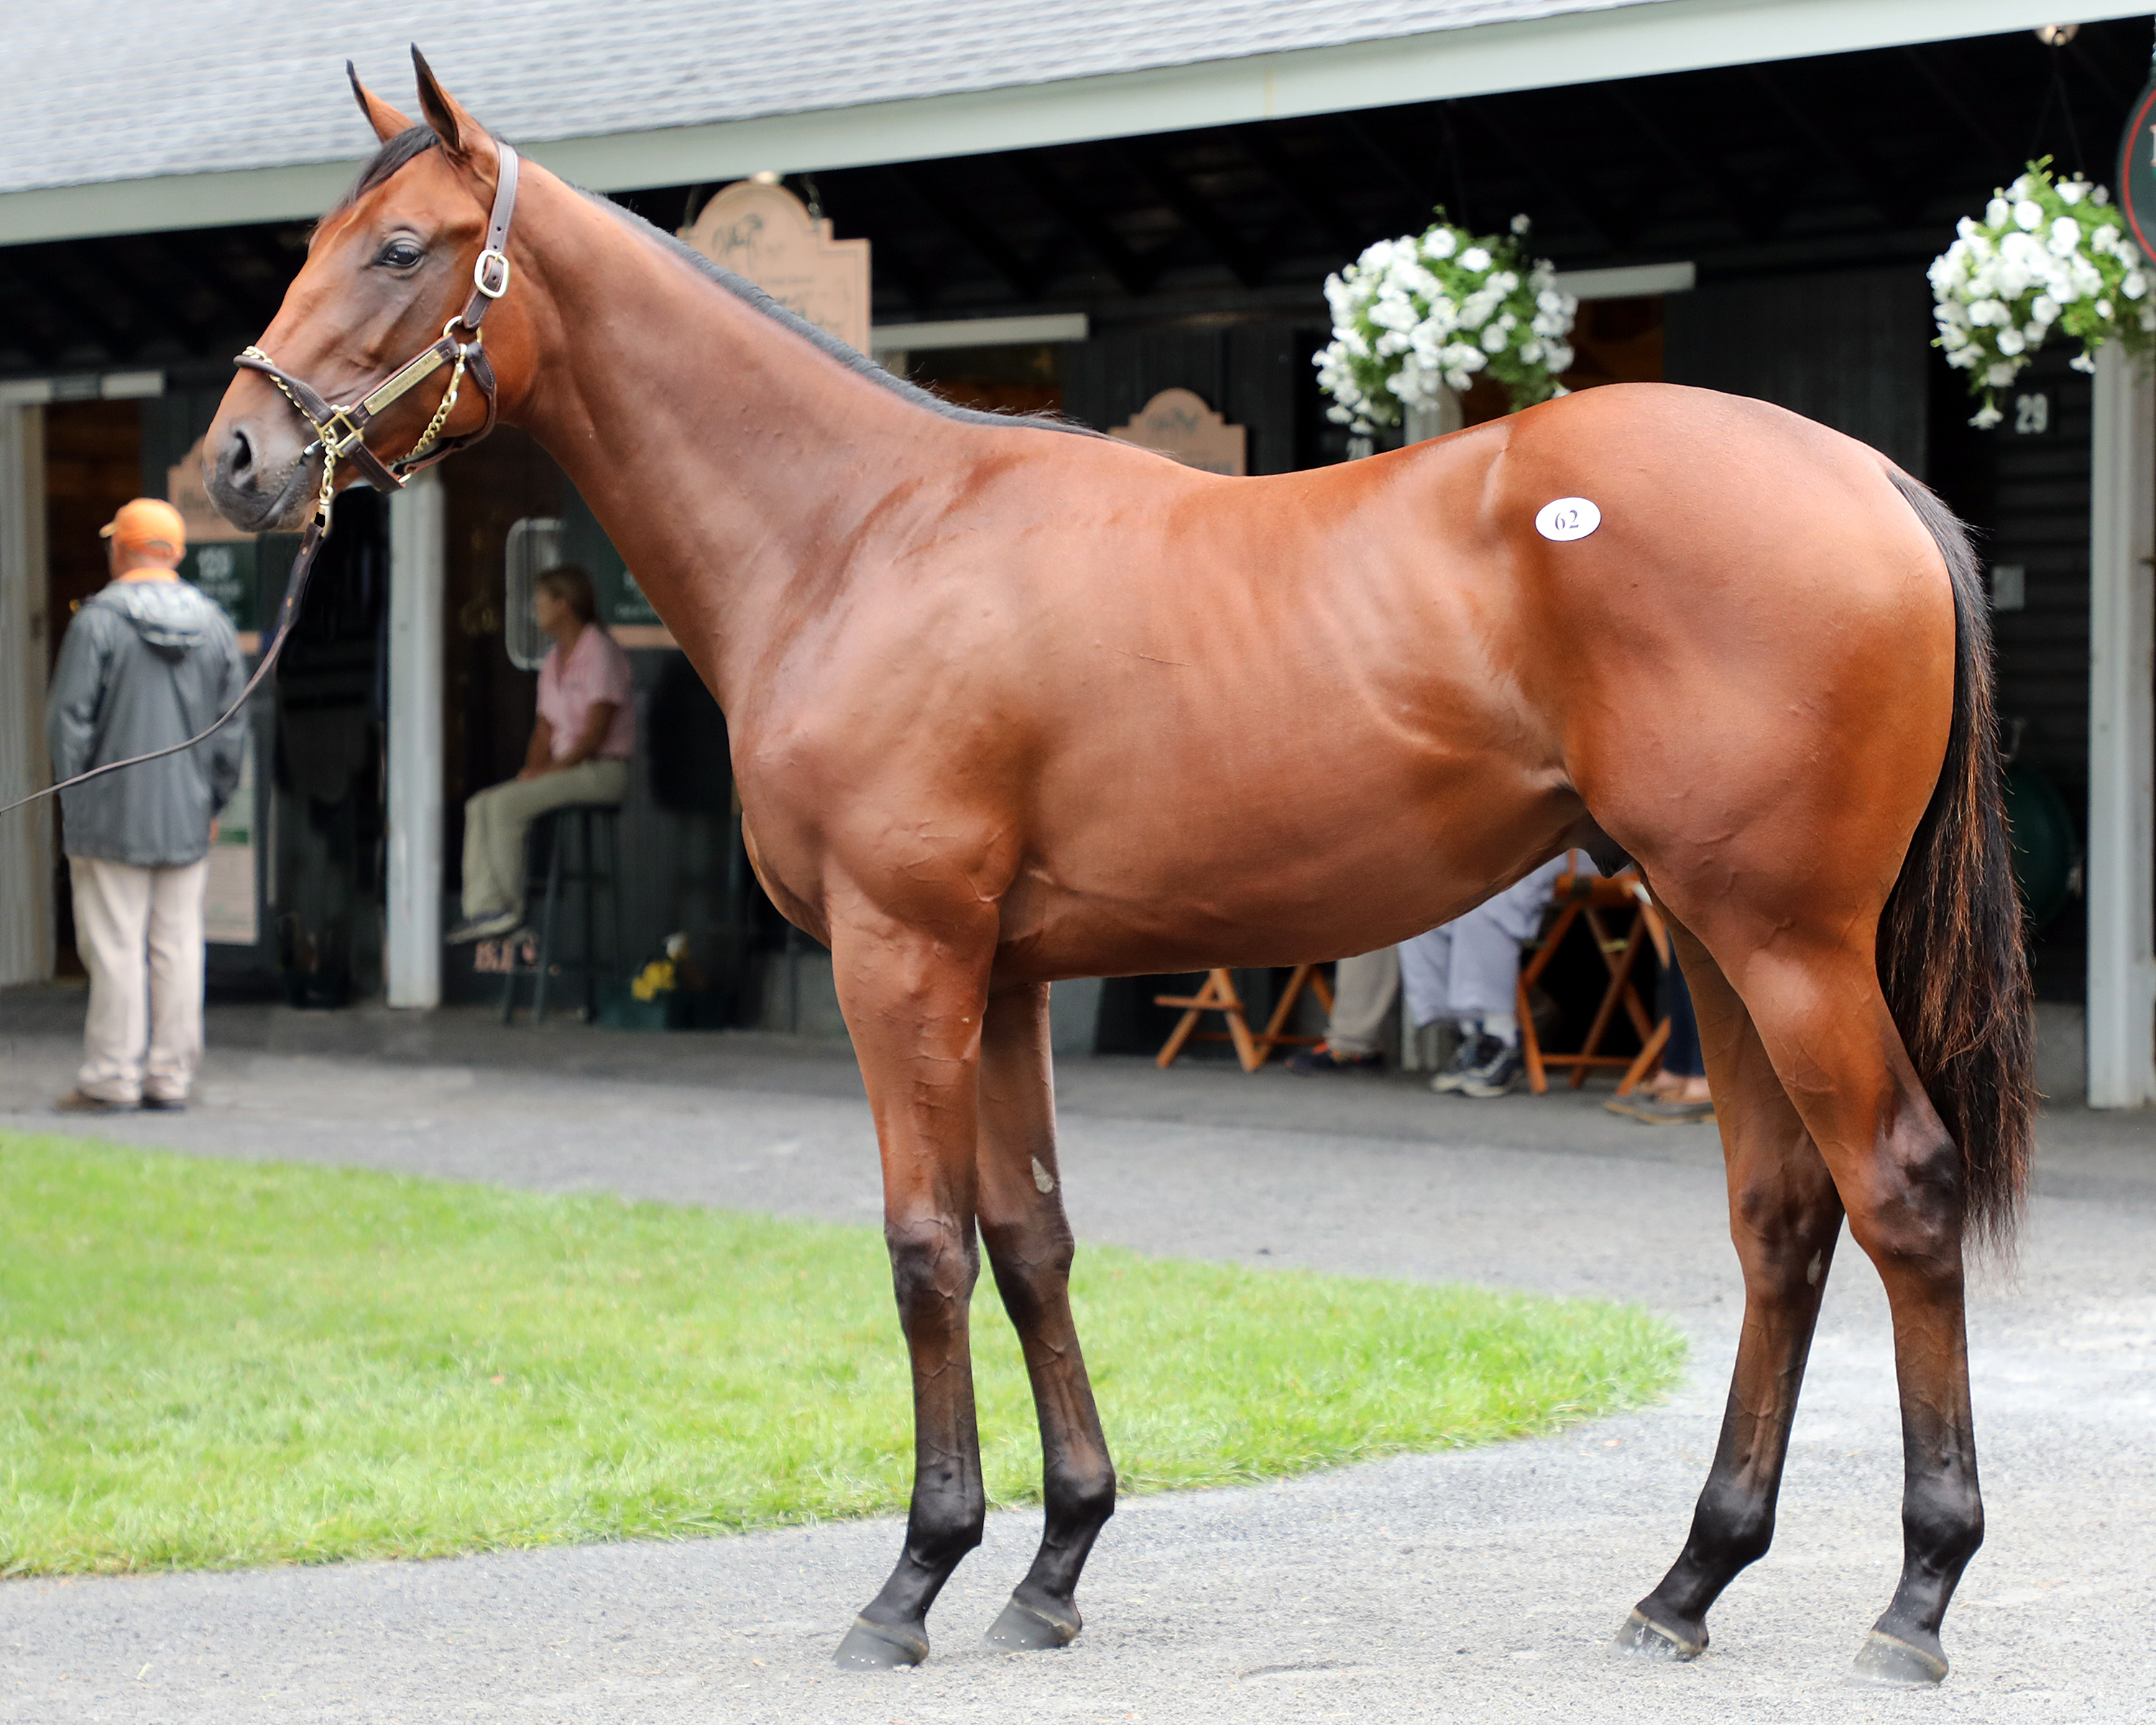 Bob Baffert signed for $1 million on behalf of M.V. Magnier for this colt out of Party Silks at the Fasig-Tipton Saratoga sale in August. Photo: Fasig-Tipton